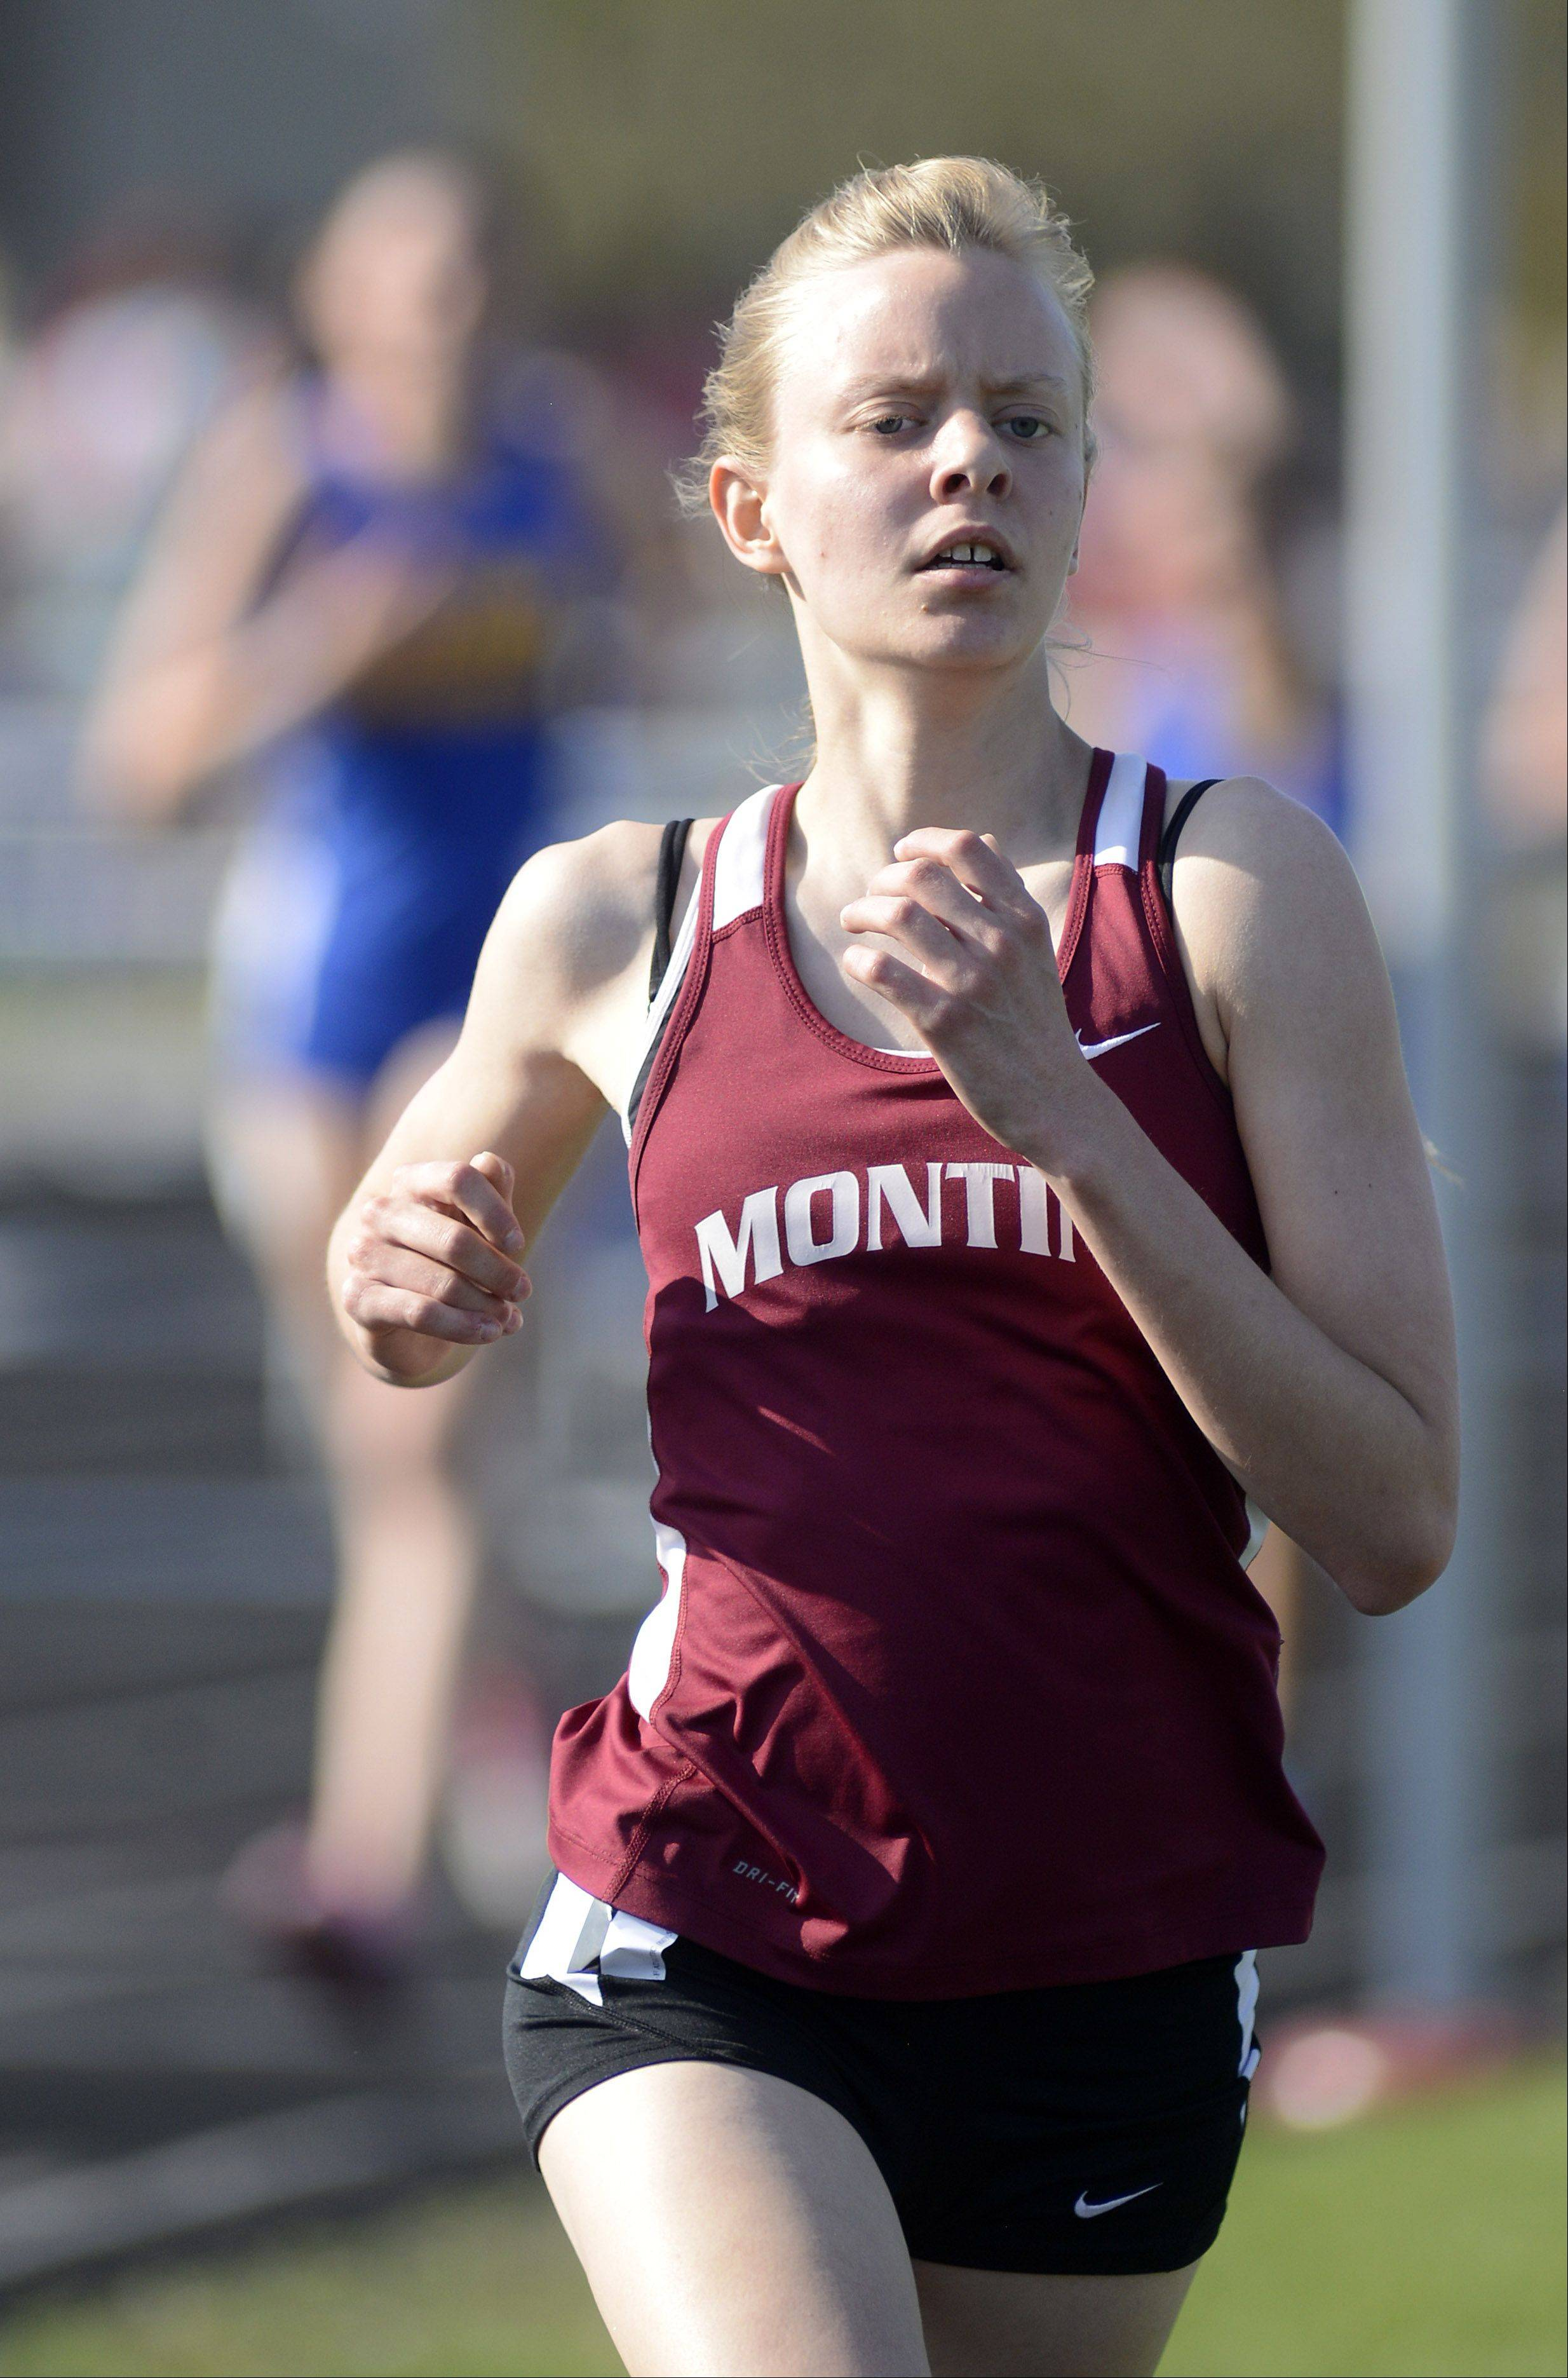 Montini's Maggie Hallerud wins the 3200 meter run at the Suburban Christian Conference on Wednesday, May 1.